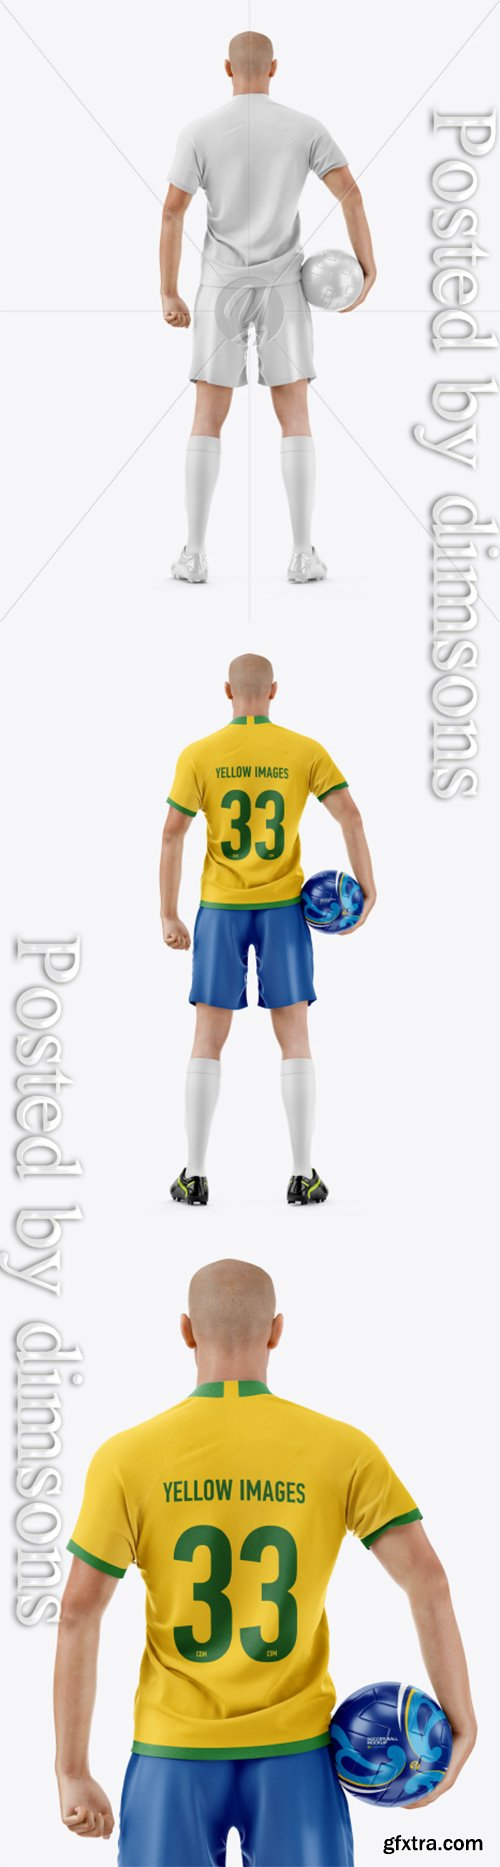 Soccer Player with Ball Mockup 41273